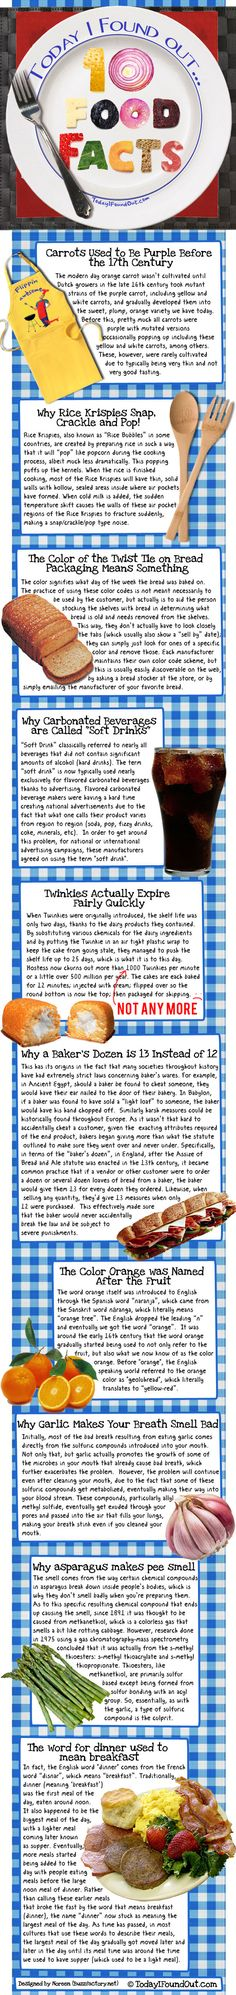 10 food facts.